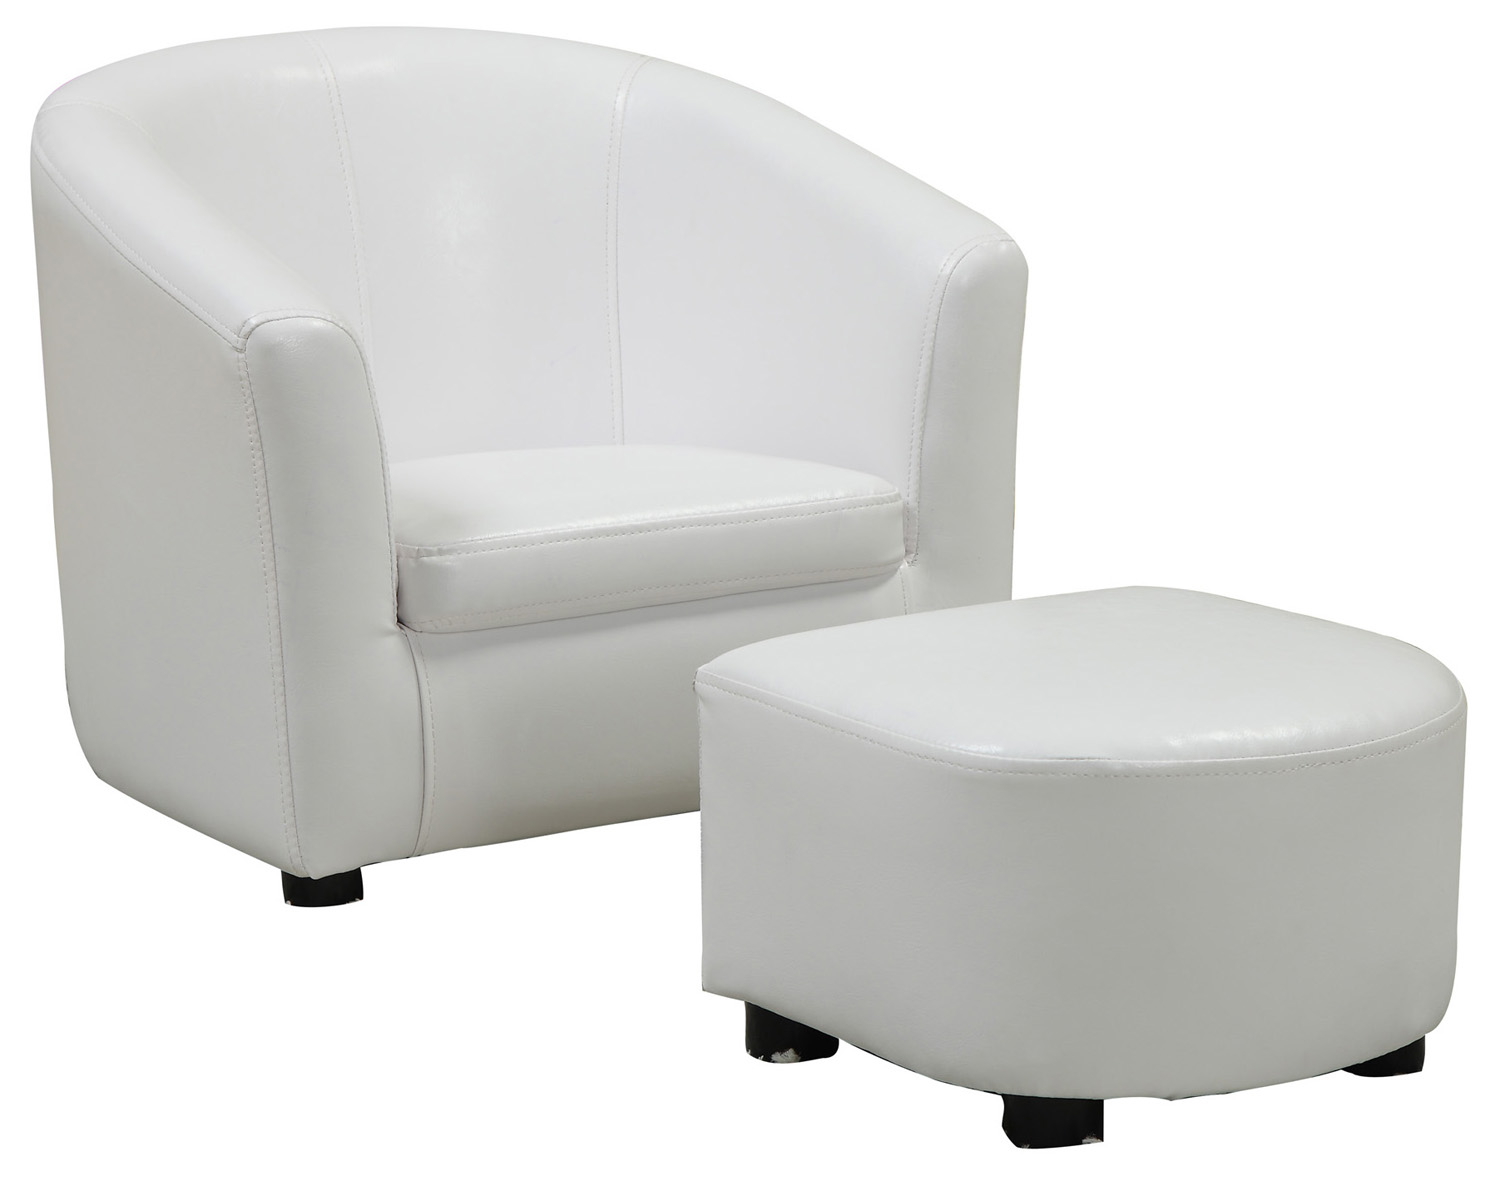 (Open Box) Juvenile Chair - 2 Pieces Set / White Leather-Look Fabric